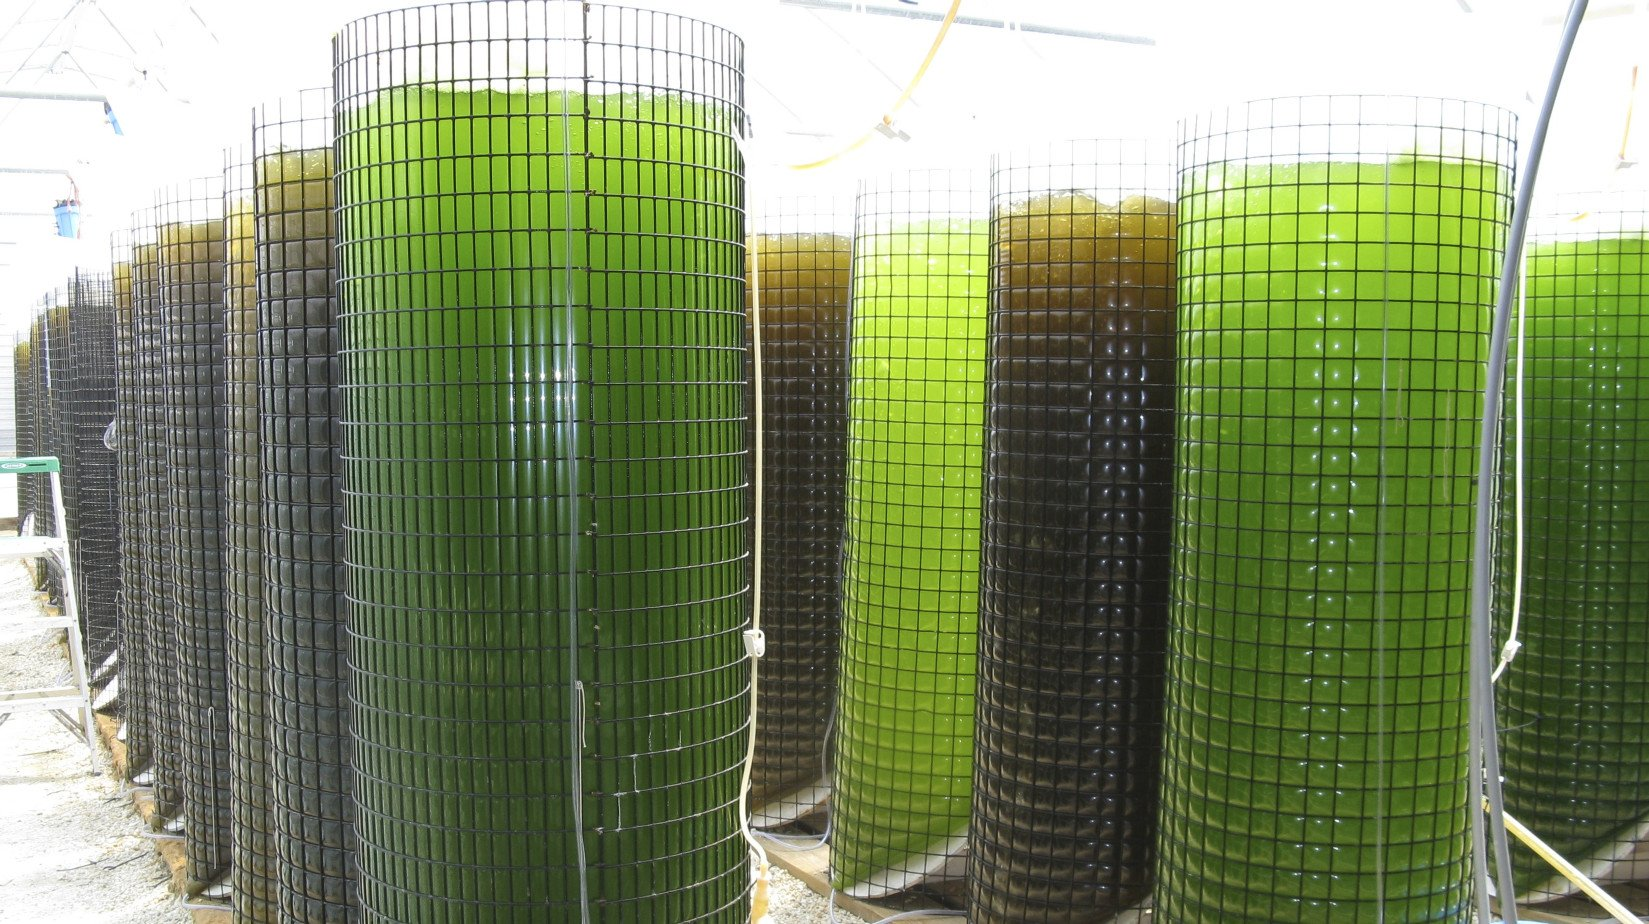 A DIFFERENT SPECIES OF ALGAE CAN BE GROWN IN EACH BIOREACTOR  SEACAPS CONTINUOUS CULTURE PRODUCES A HIGH CONSISTENT NUTRIENT VALUE ALGAE FOR YOUR NEEDS